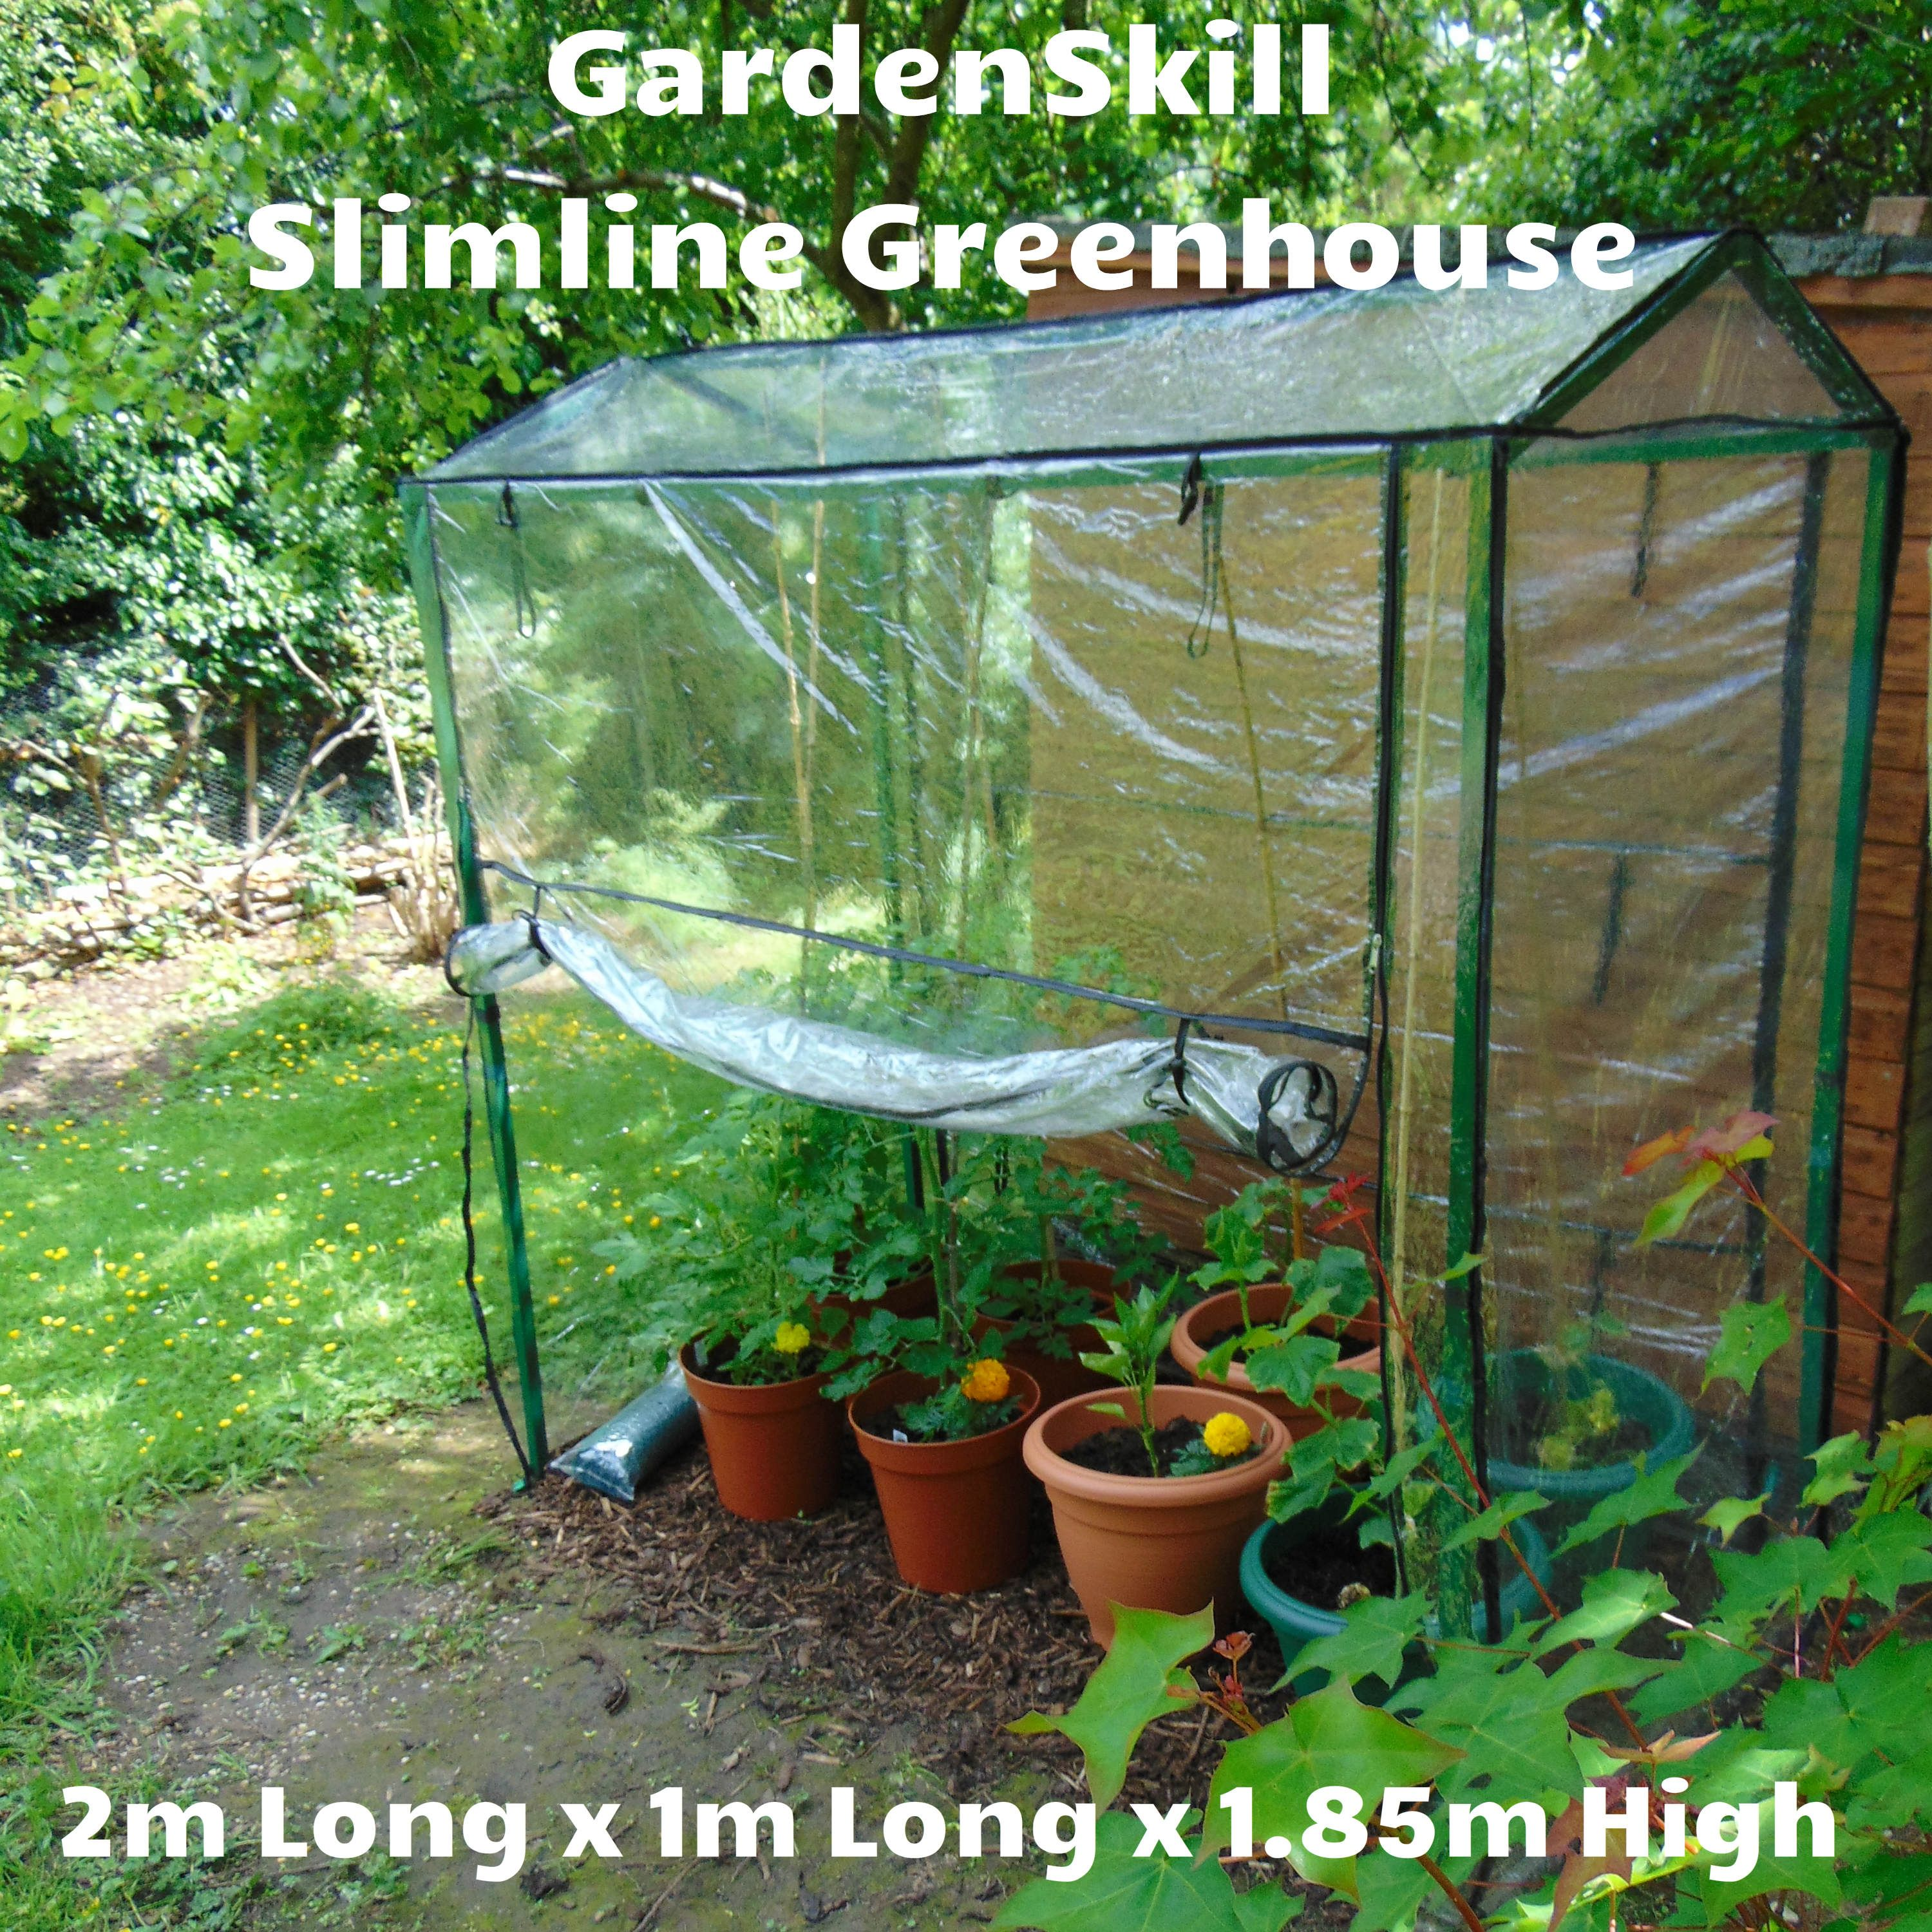 slimline greenhouse tomato shelter manufactured from high